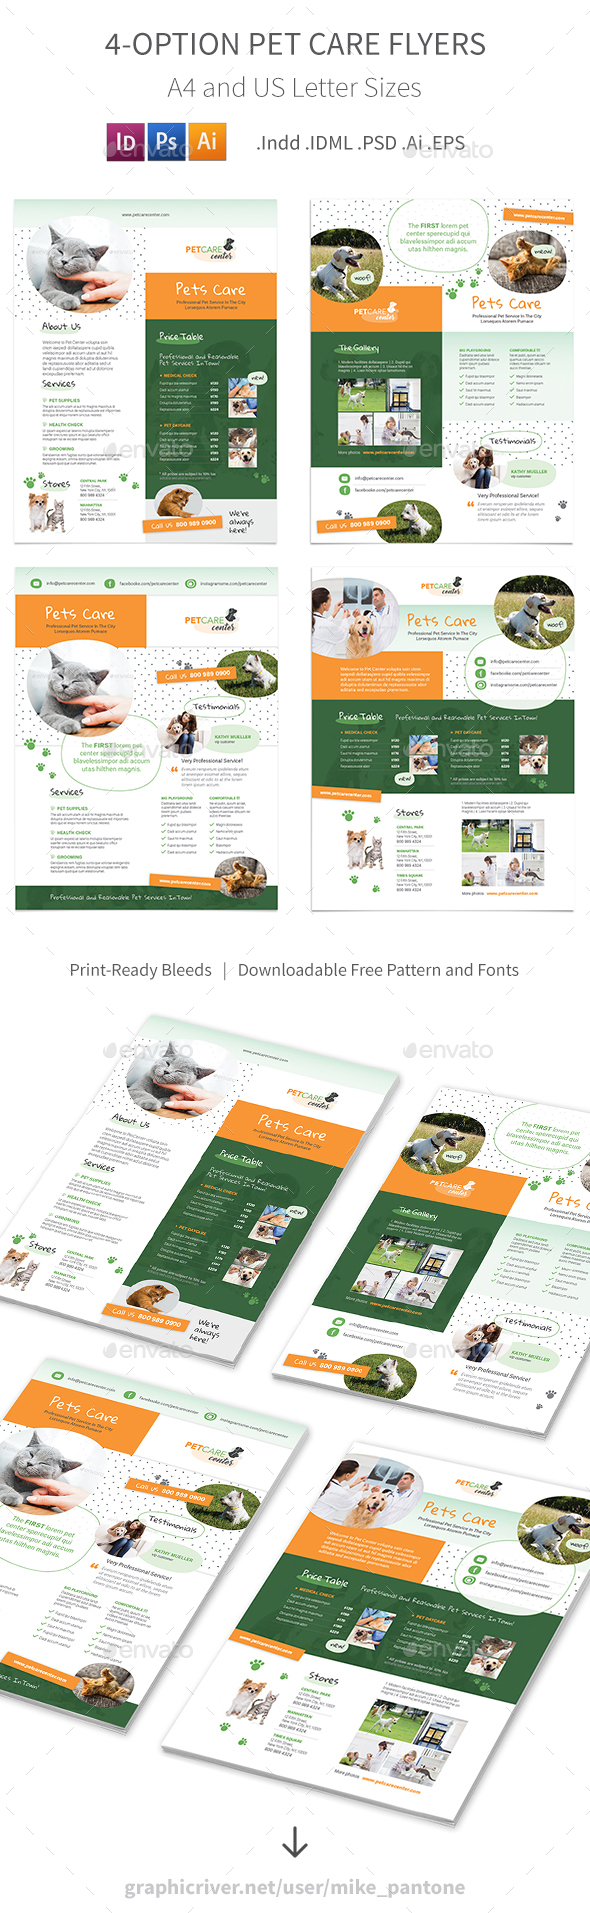 Pet Care Flyers 6 – 4 Options - Corporate Flyers